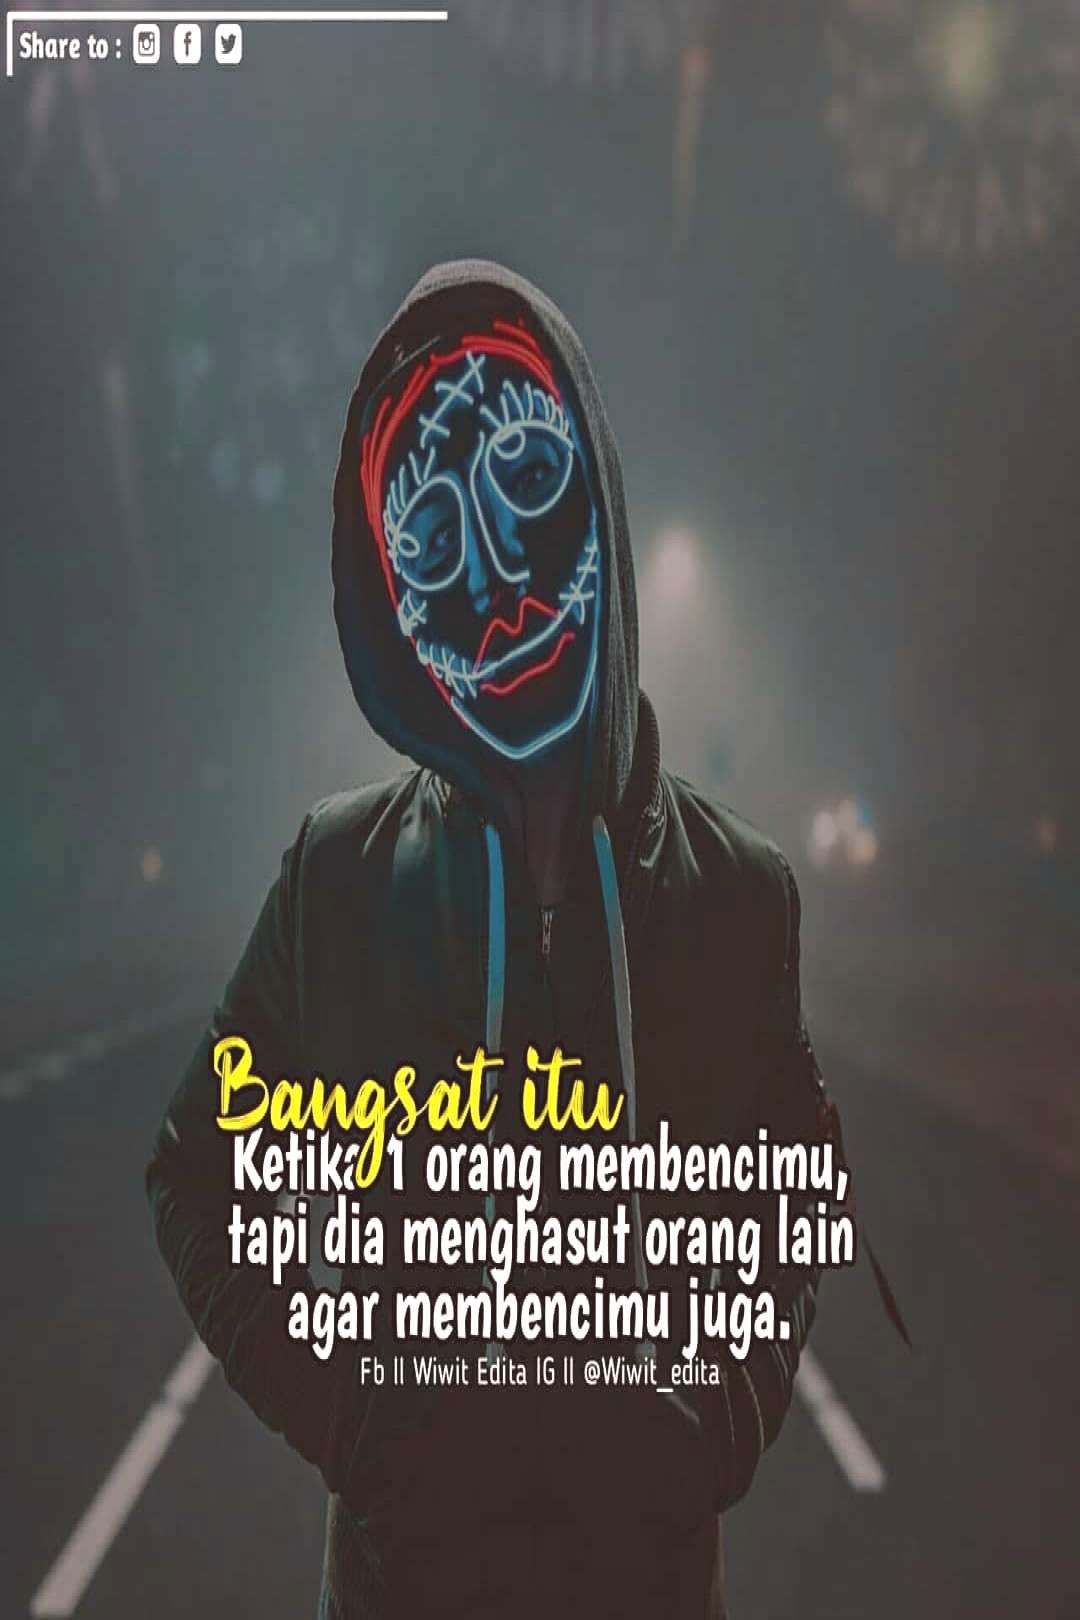 #likekomendan #jangan #people #share #lupa #foll #more #text #one #and #go #or Jangan lupa like,komen,dan share ⚋⚋⚋⚋⚋⚋⚋⚋ Go follYou can find indonesian quotes and more on our website.Jangan lupa like,komen,dan share ⚋⚋⚋⚋⚋⚋⚋⚋ Go foll